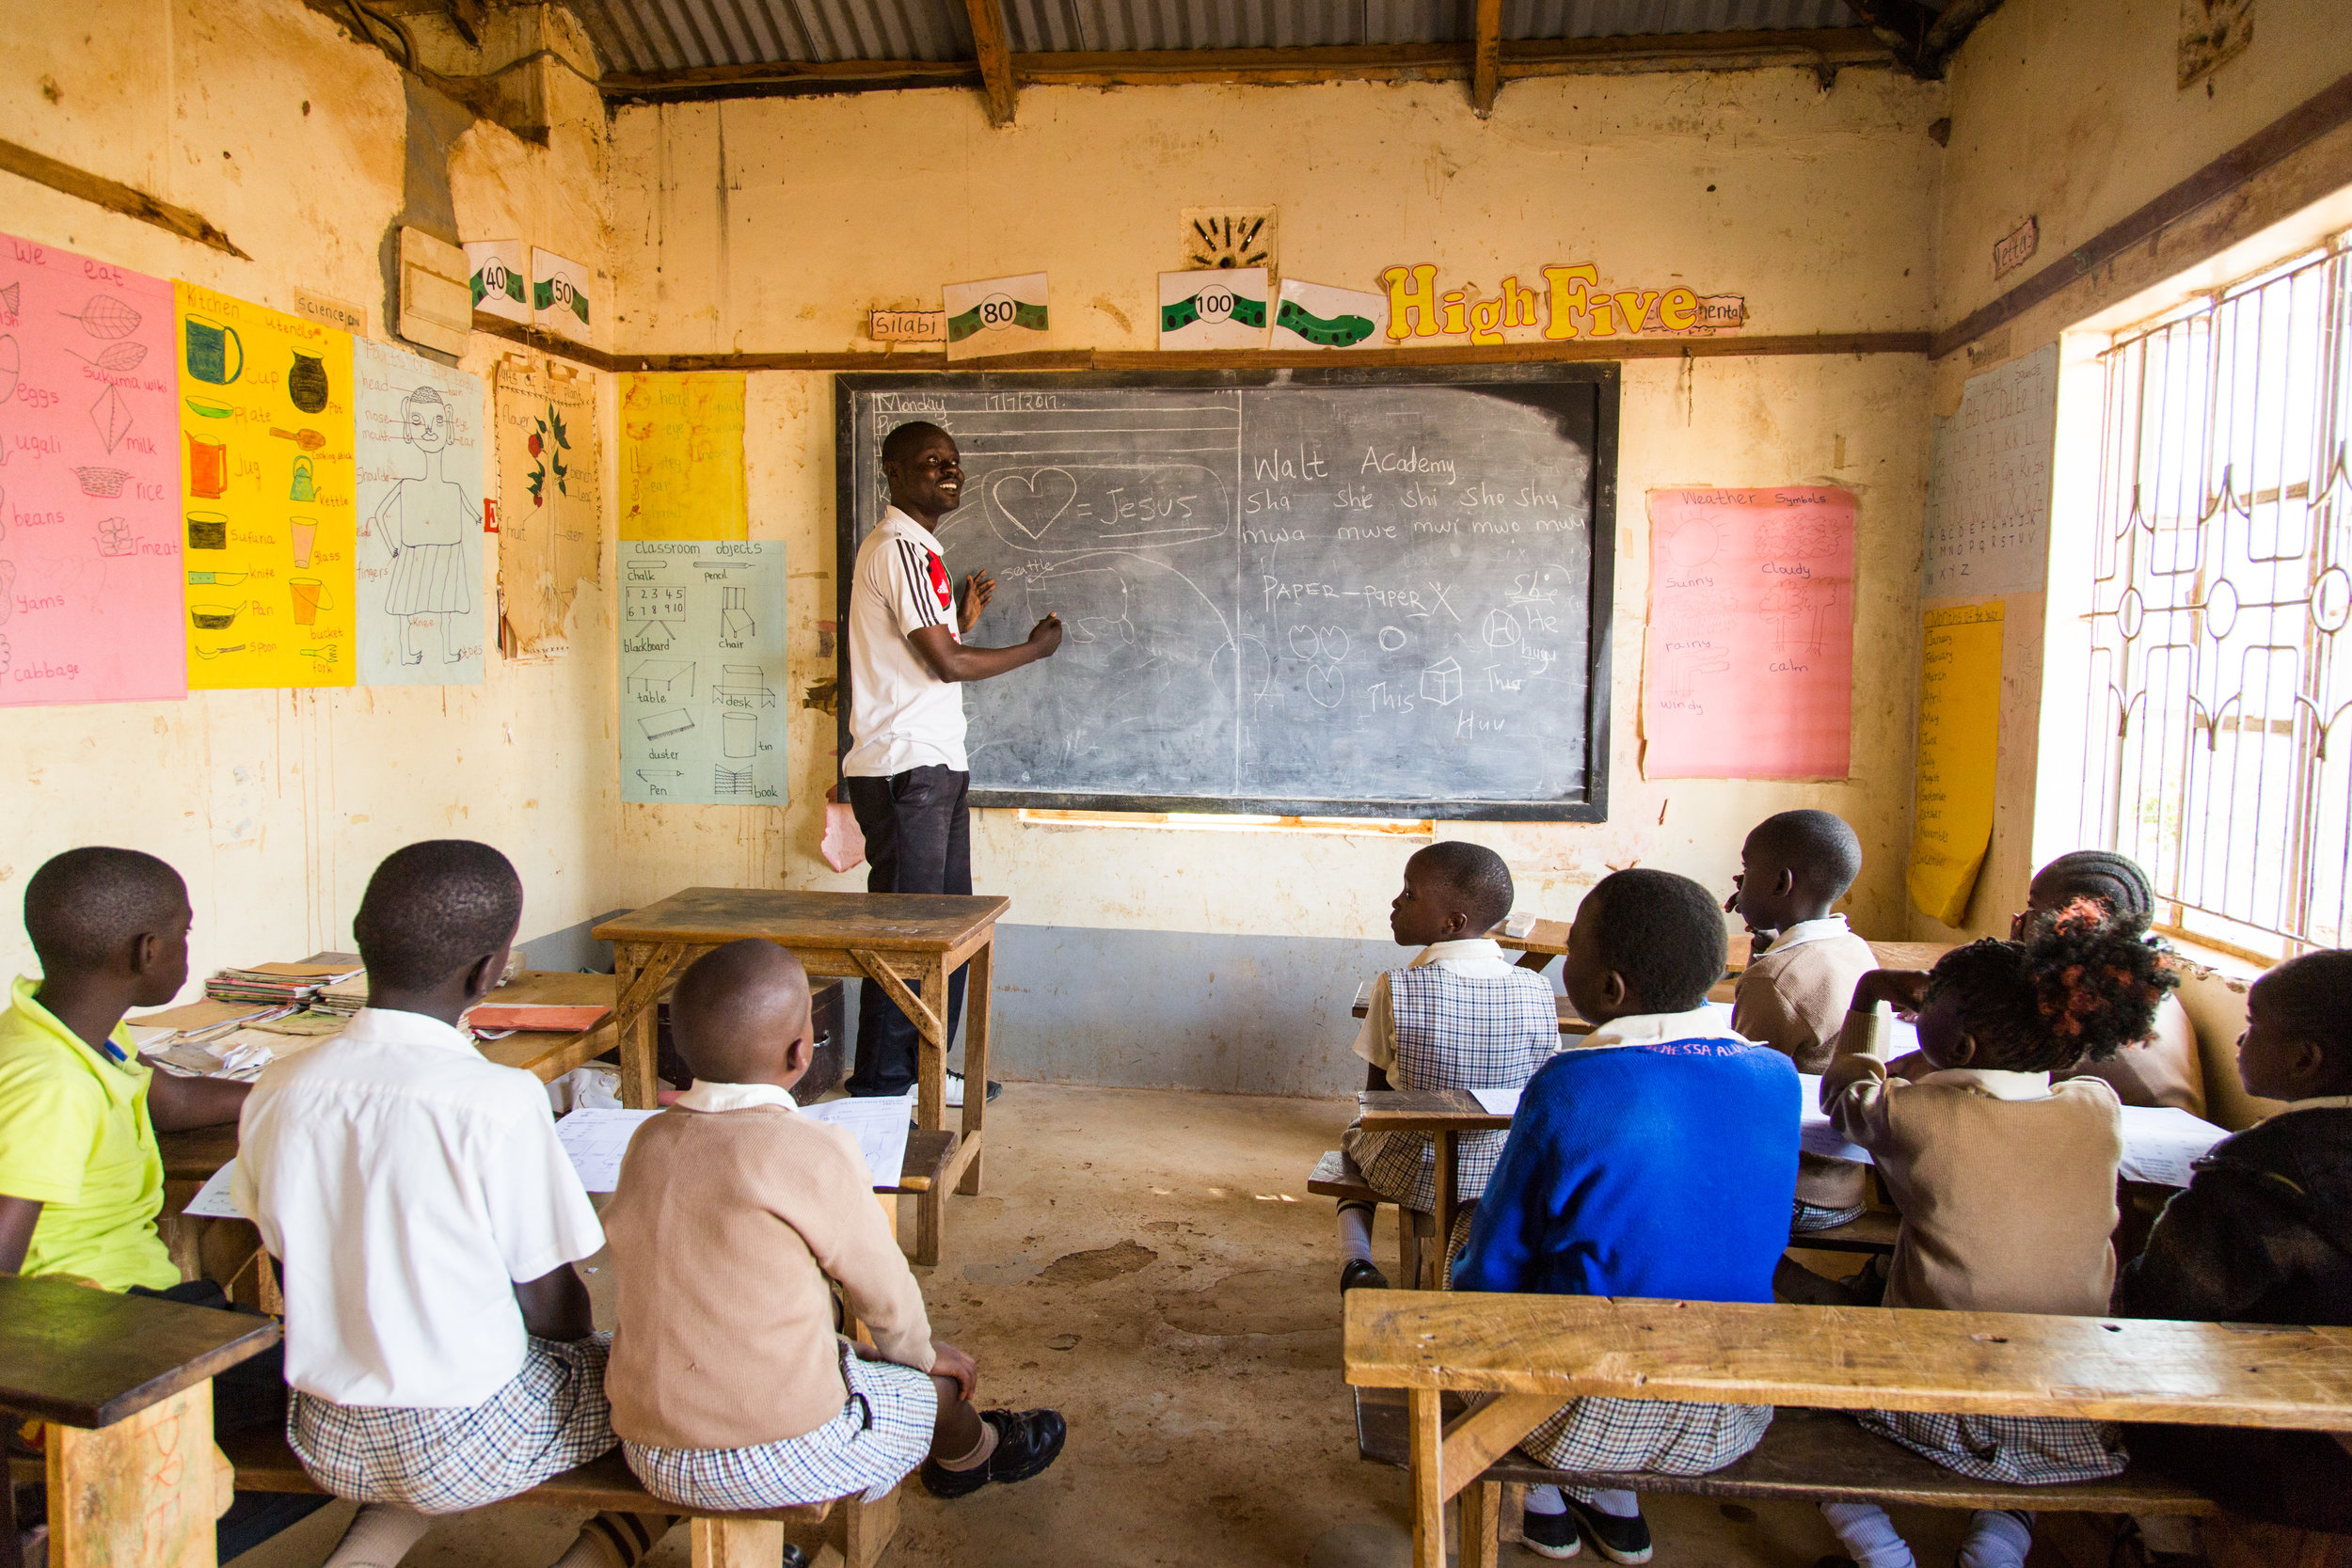 Denis empowers 50 teachers and 500 students … - 70 years old, Denis commits each day to helping others